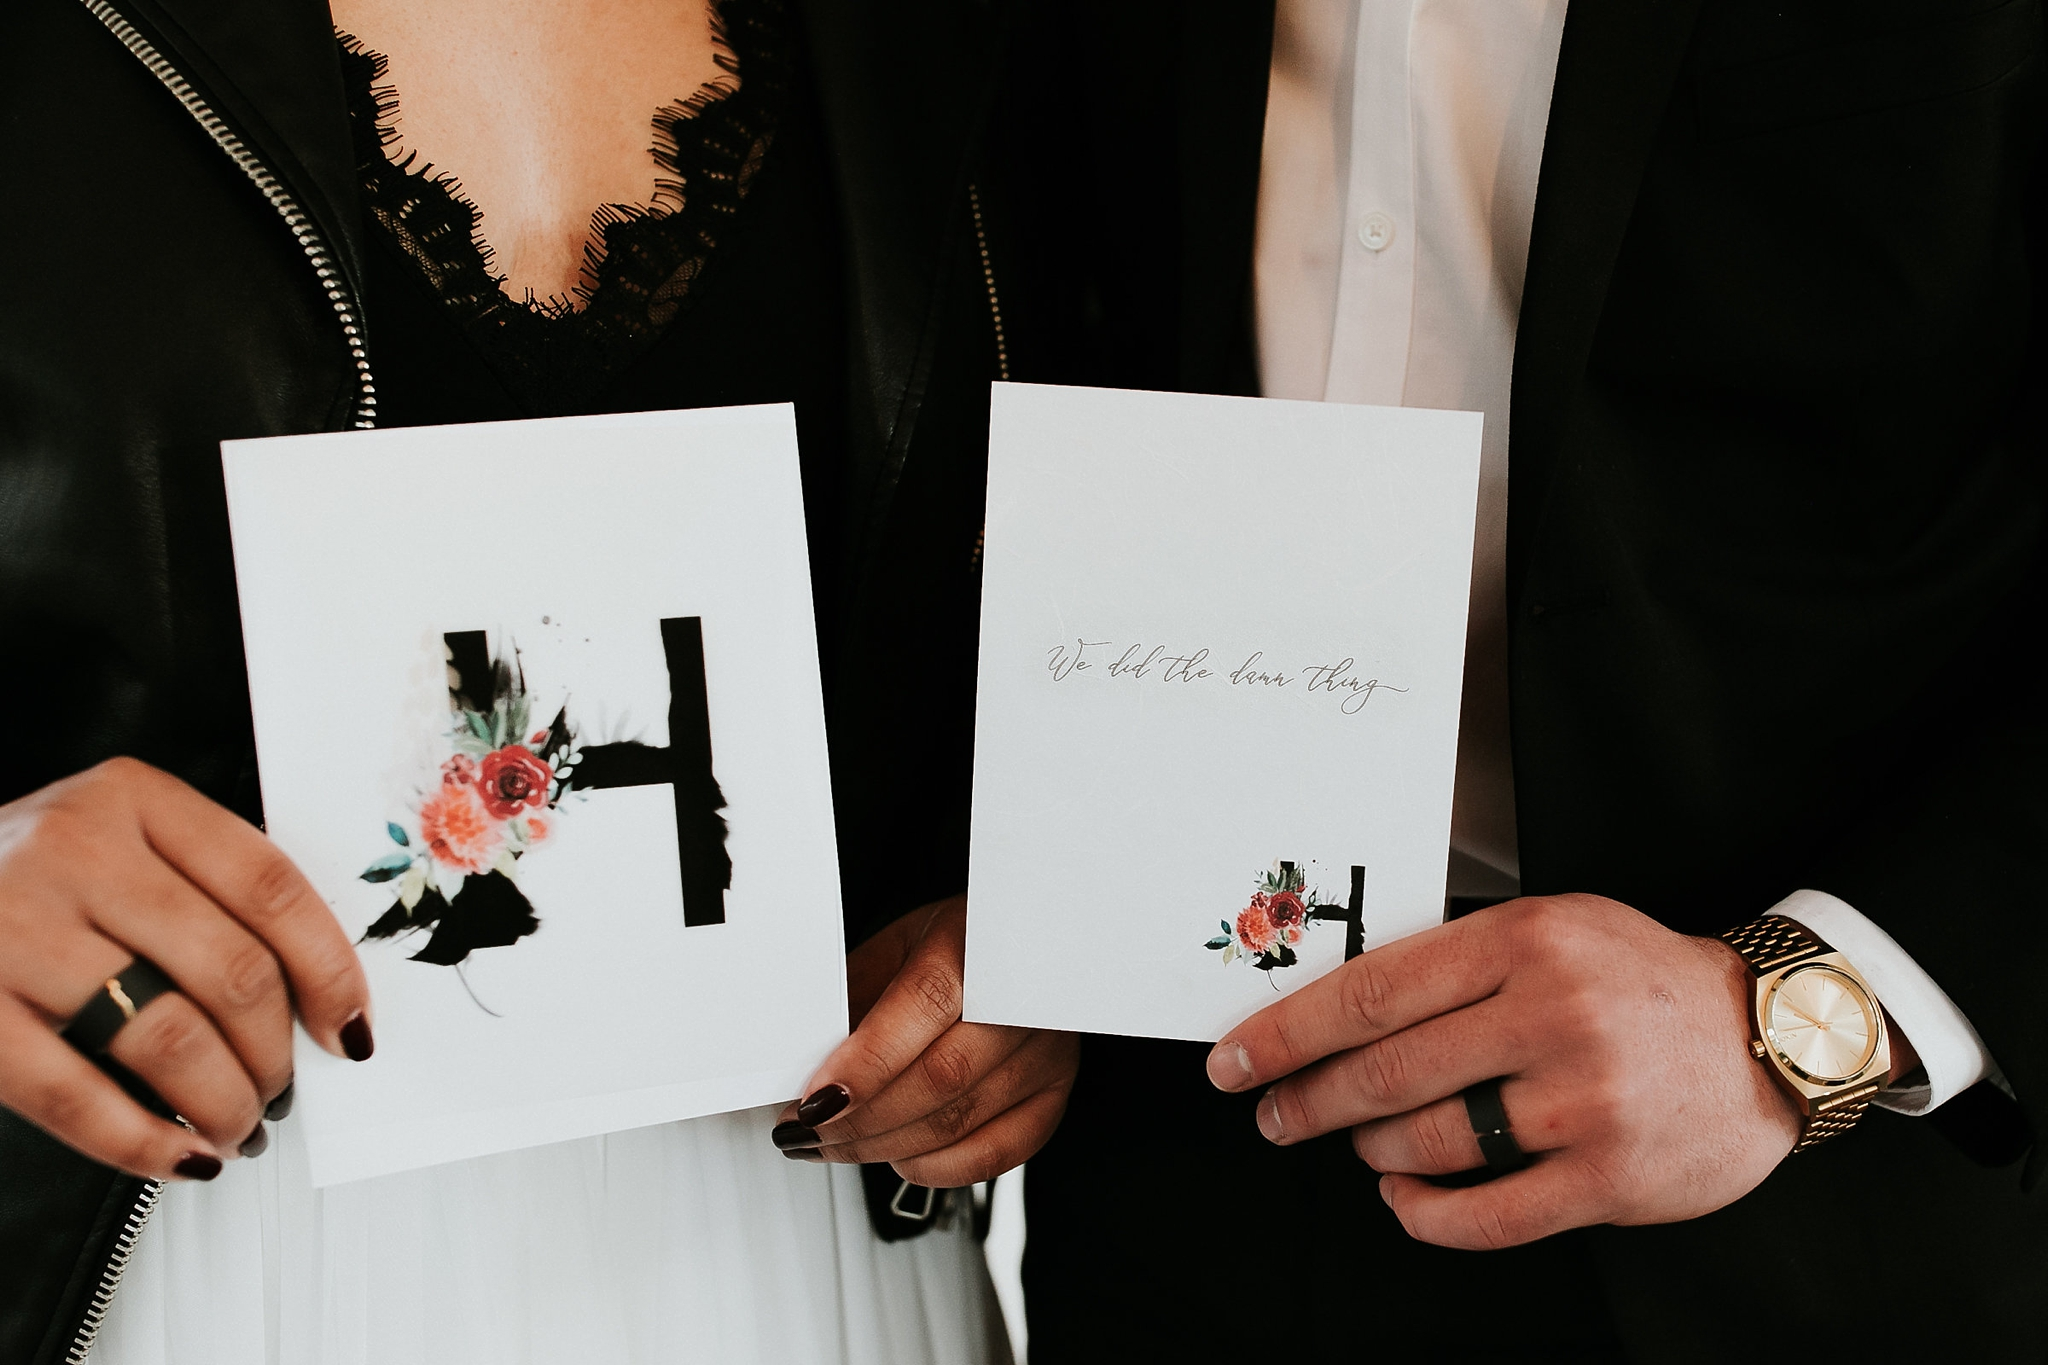 Alicia+lucia+photography+-+albuquerque+wedding+photographer+-+santa+fe+wedding+photography+-+new+mexico+wedding+photographer+-+new+mexico+wedding+-+wedding+invitations+-+invitation+suite+-+wedding+inspo_0025.jpg